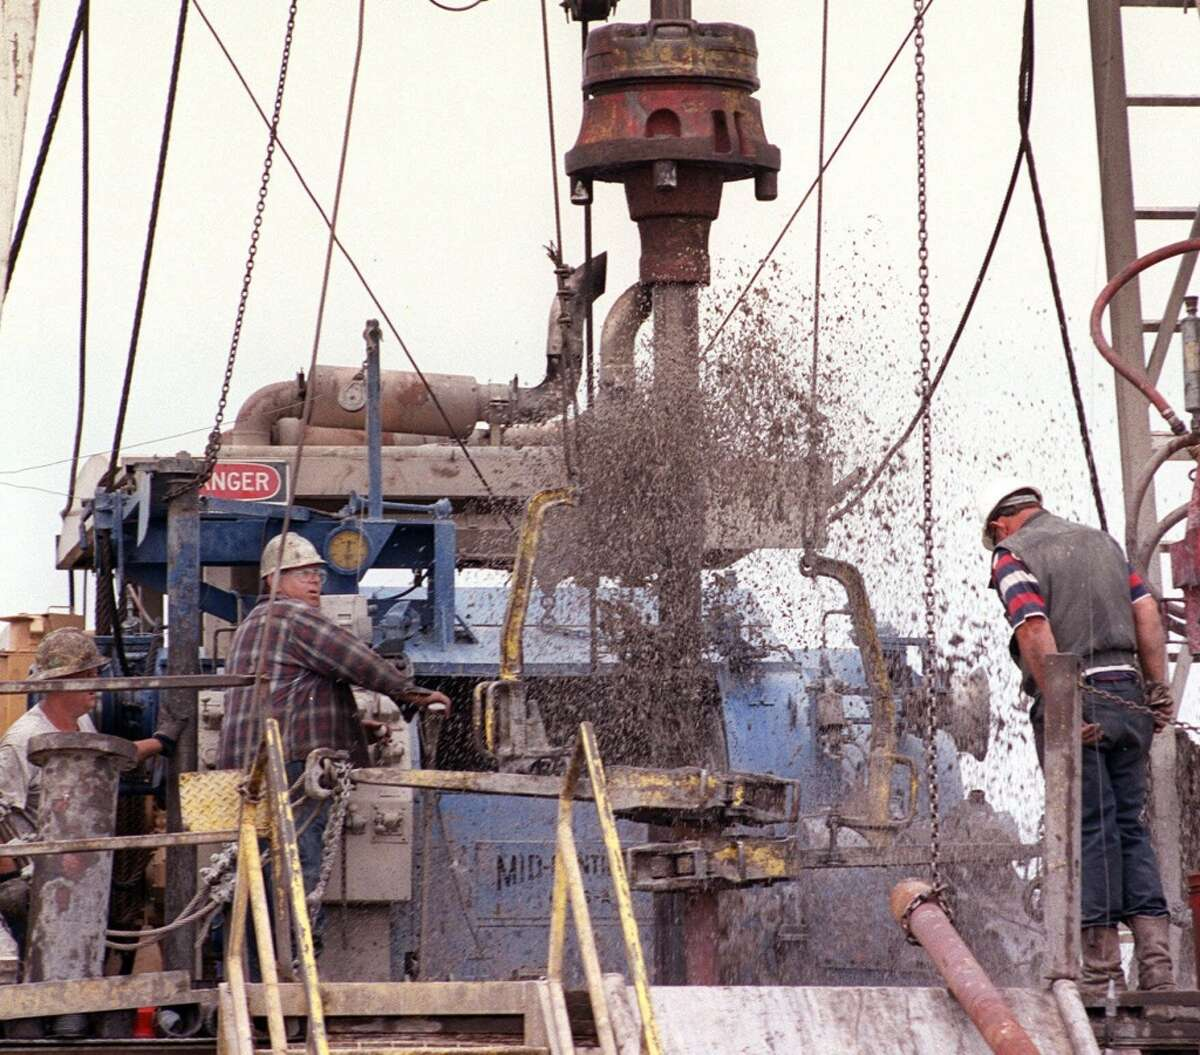 Drilling mud flies as drillers pull drilling pipe from a Mitchell Energy and Development Corp. well in Wise County, Texas on May 16, 2000.